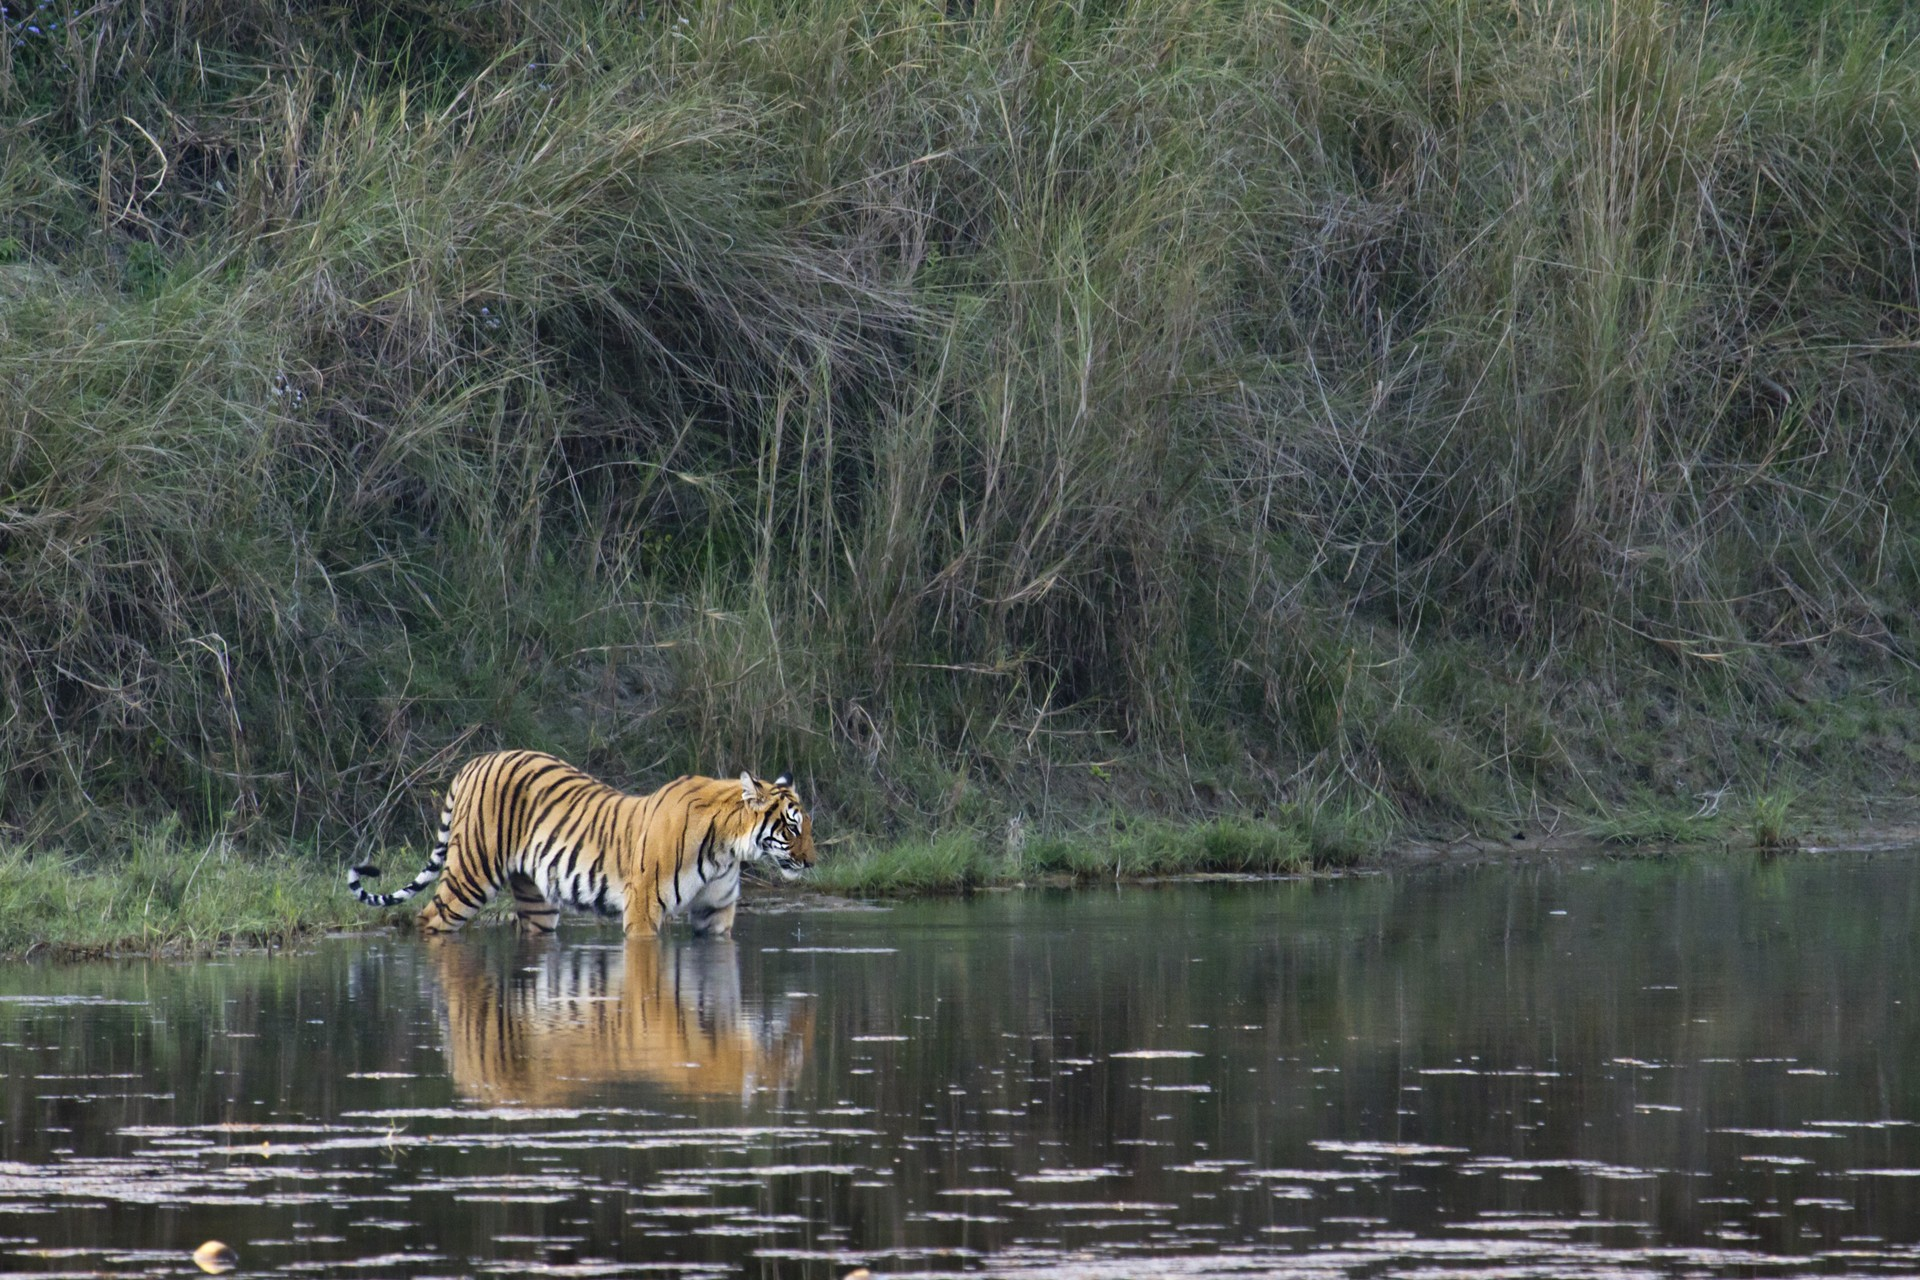 Bengal tiger in a river in Chitwan National Park, Nepal